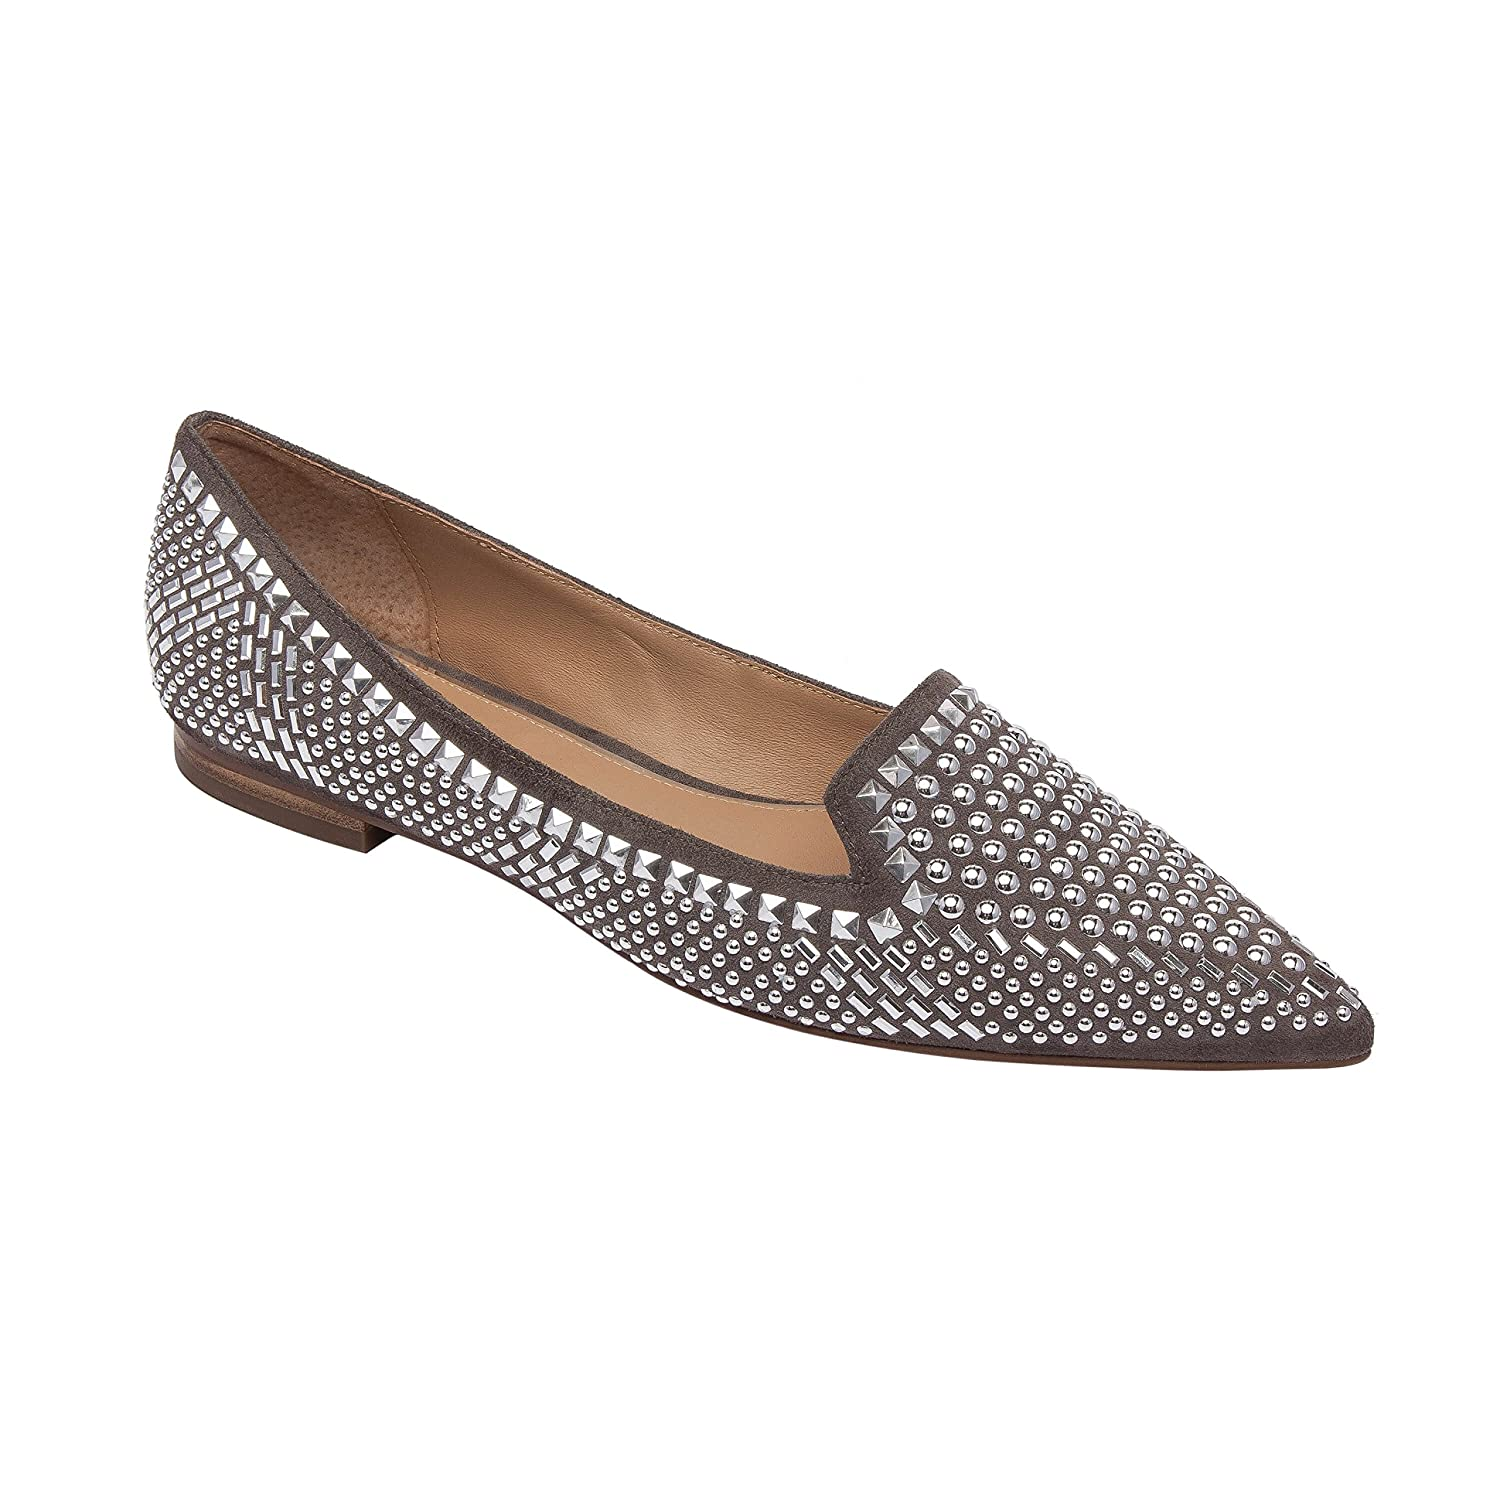 Linea Paolo Portia | Stud Adorned Suede Slip-On Moc Slipper Comfortable Flat (New Fall) B07DMB2QKZ 5 M US|Stone Suede